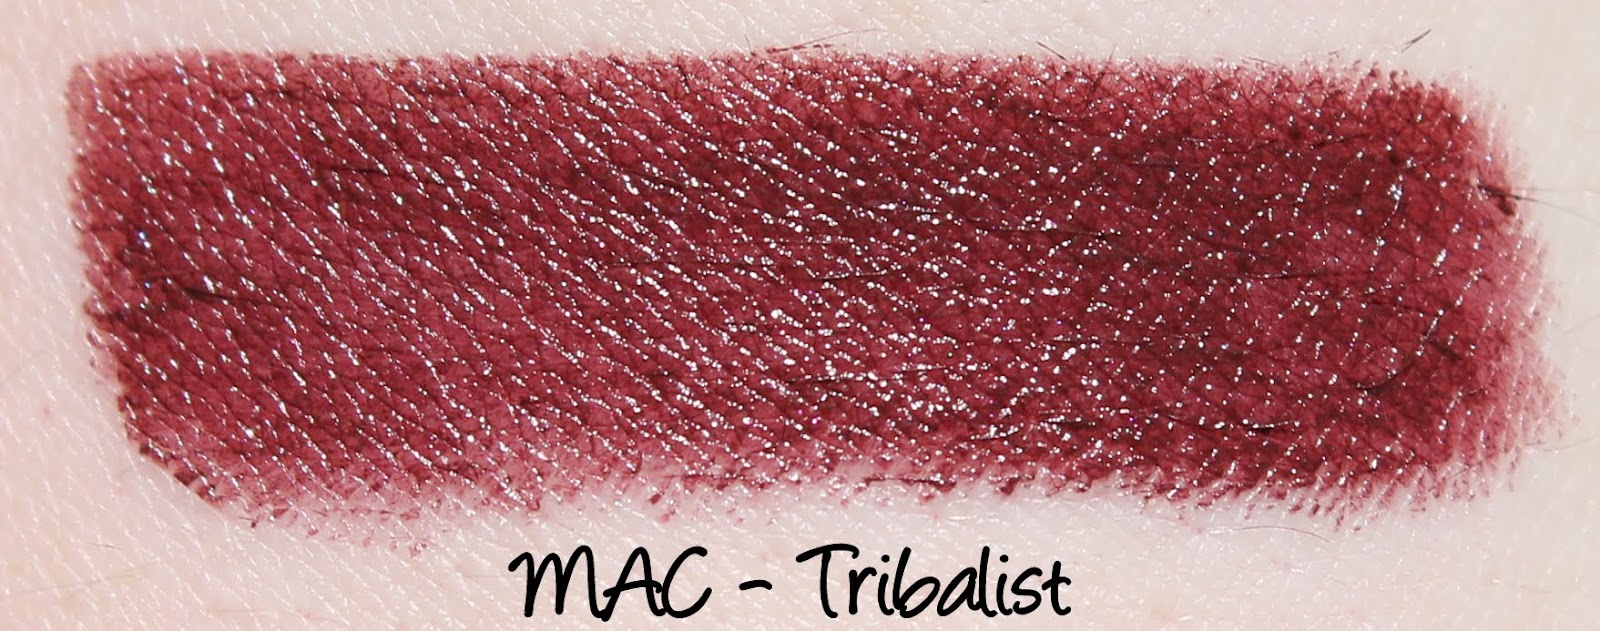 MAC Heirloom Mix Lipsticks - Tribalist Swatches & Review